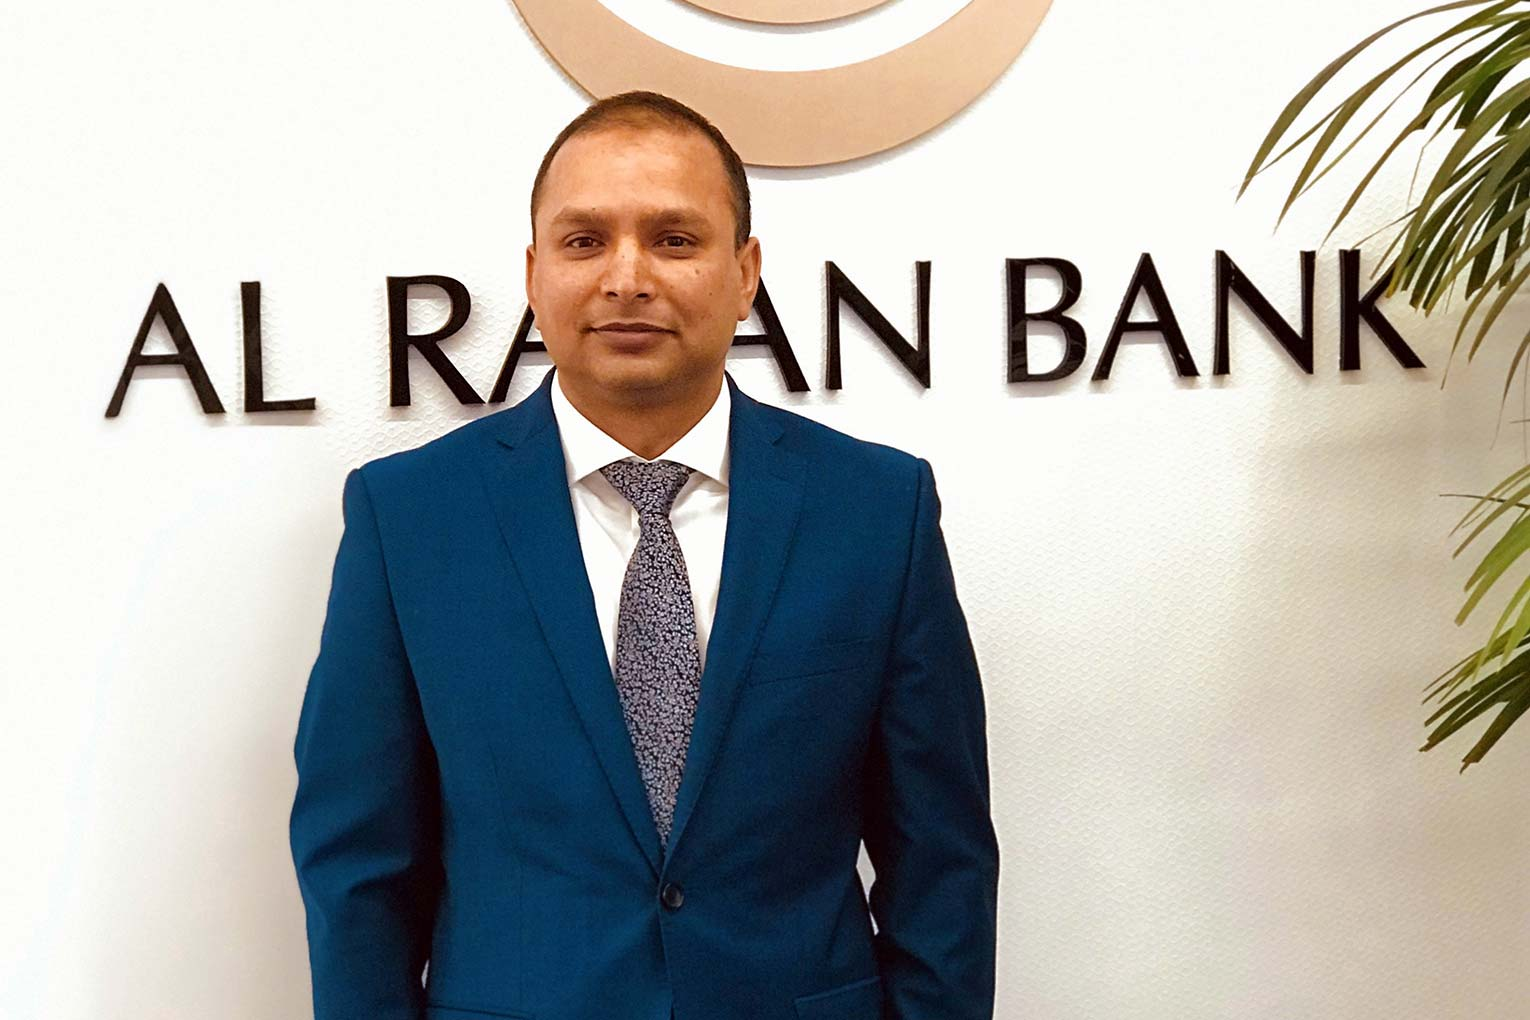 Al Rayan Bank appoints new chief risk officer